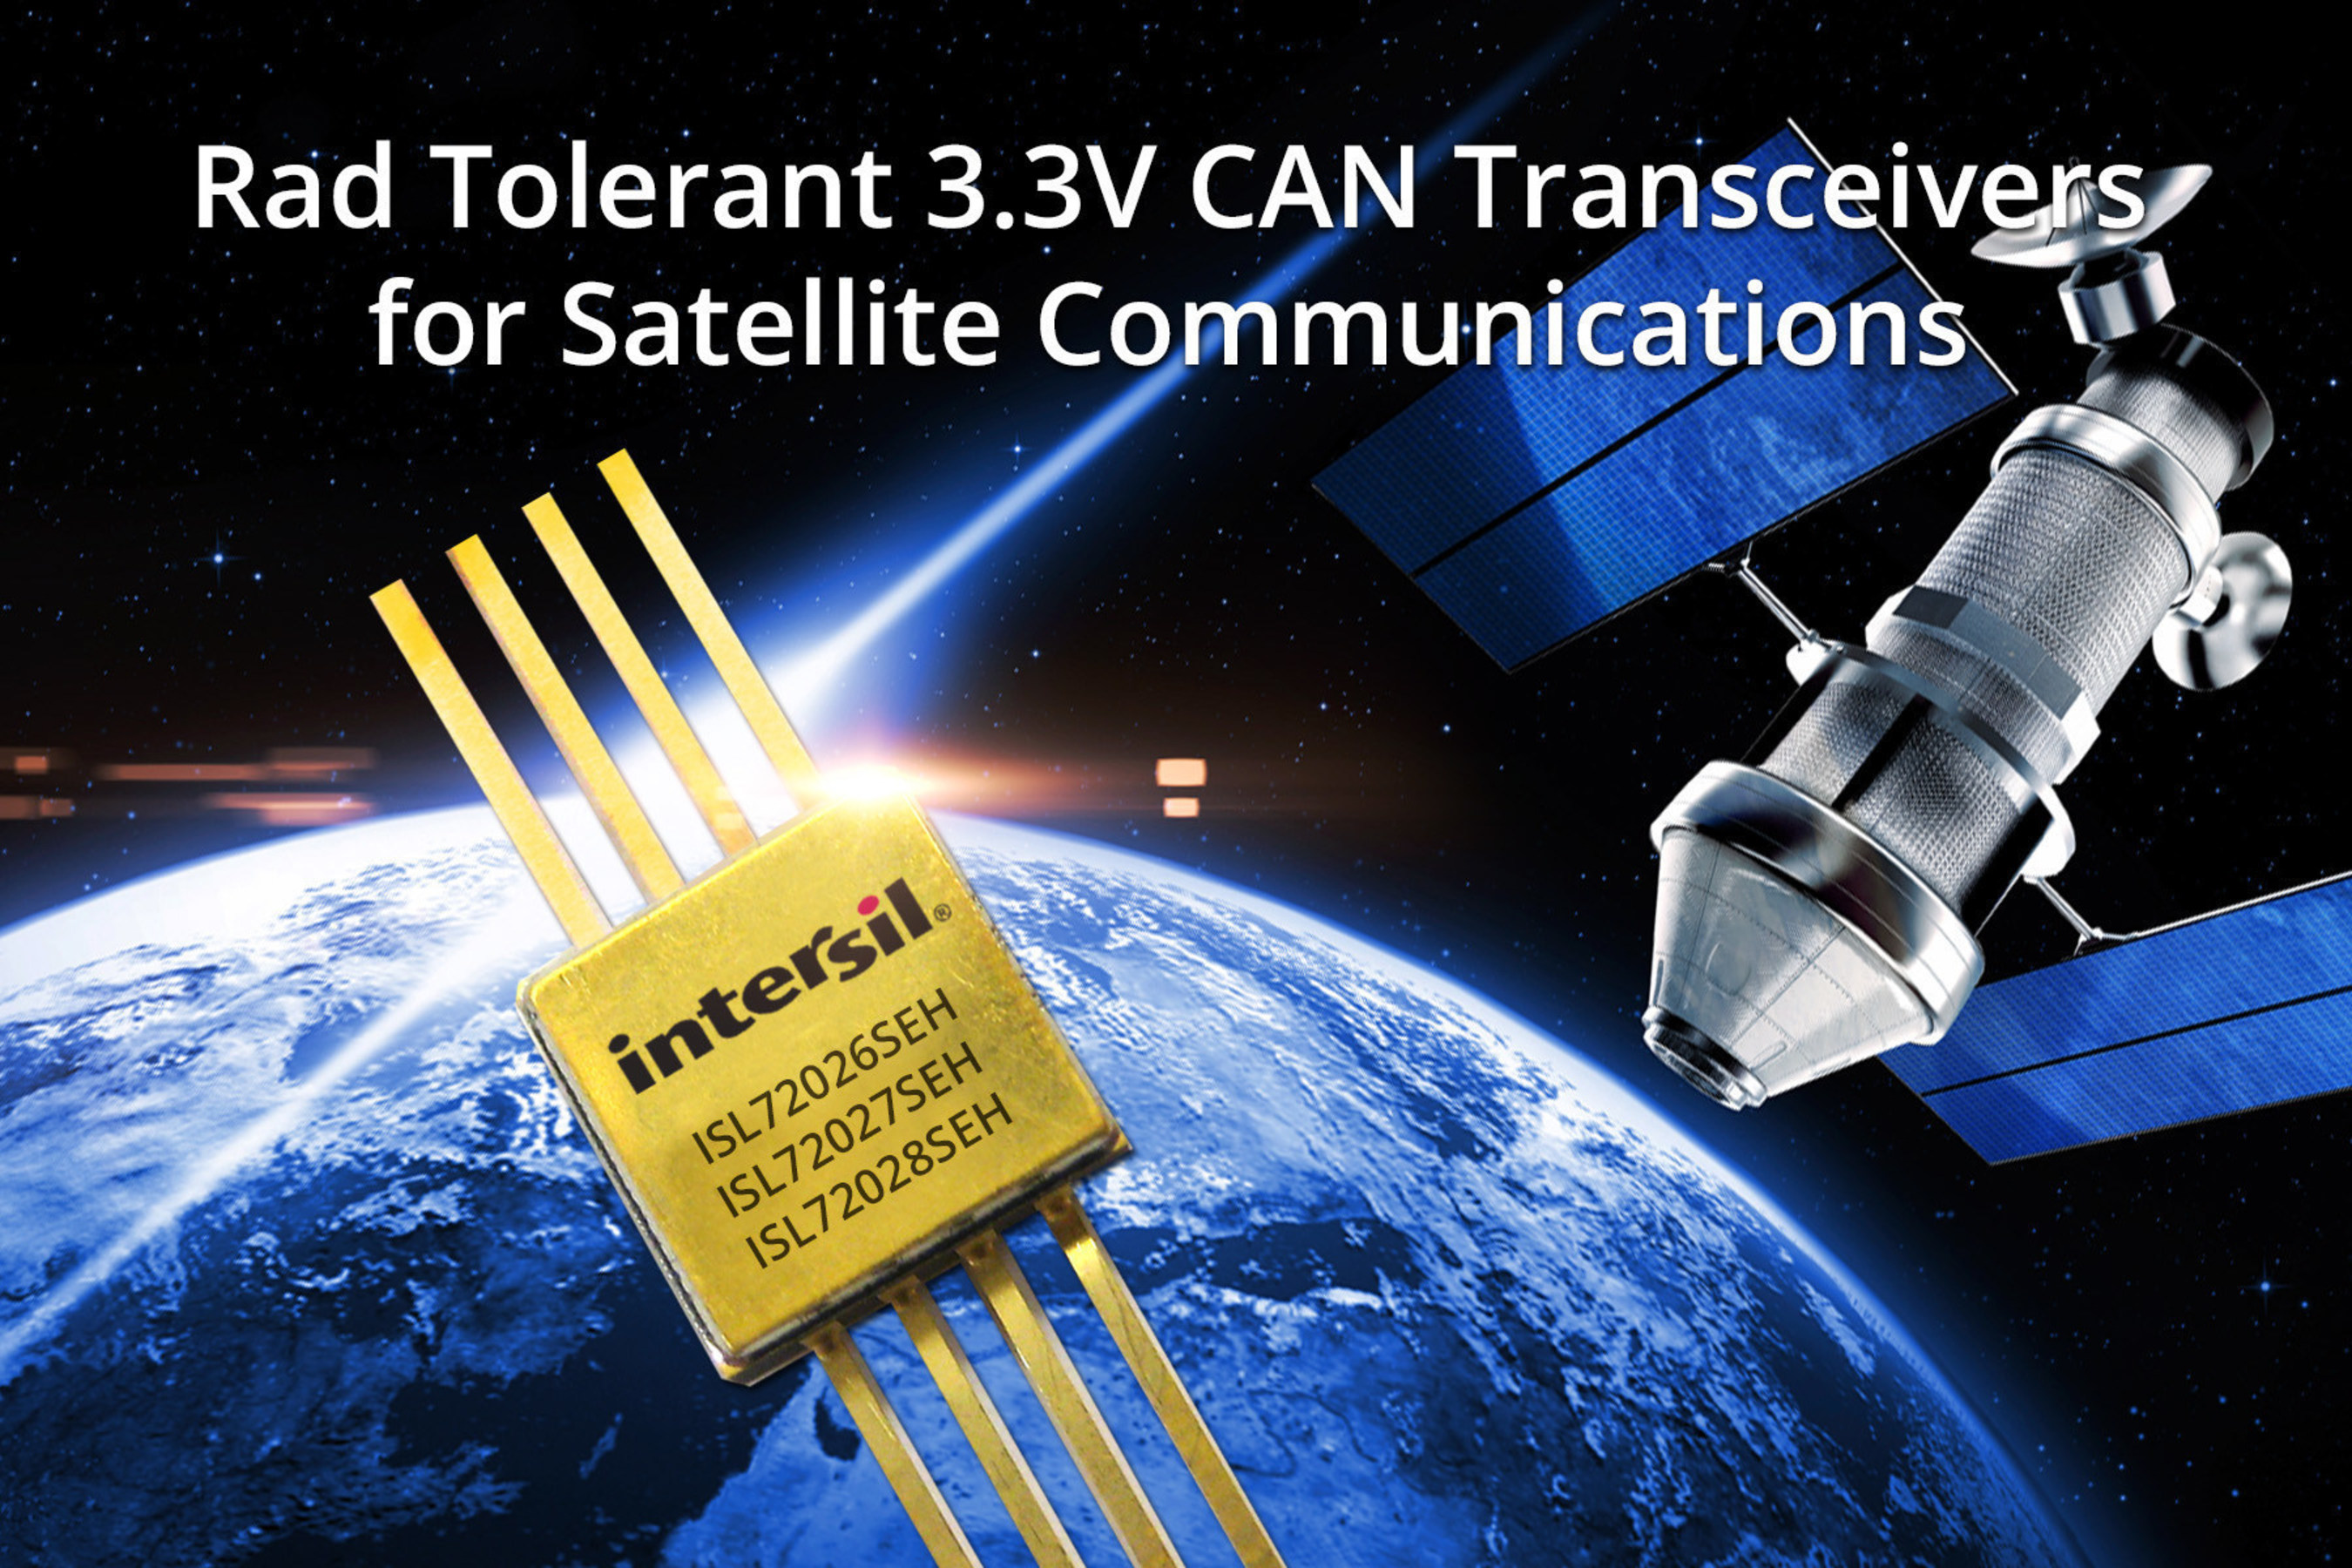 Intersil Delivers Industry's First Rad Tolerant 3.3V CAN Transceivers for Satellite Communications